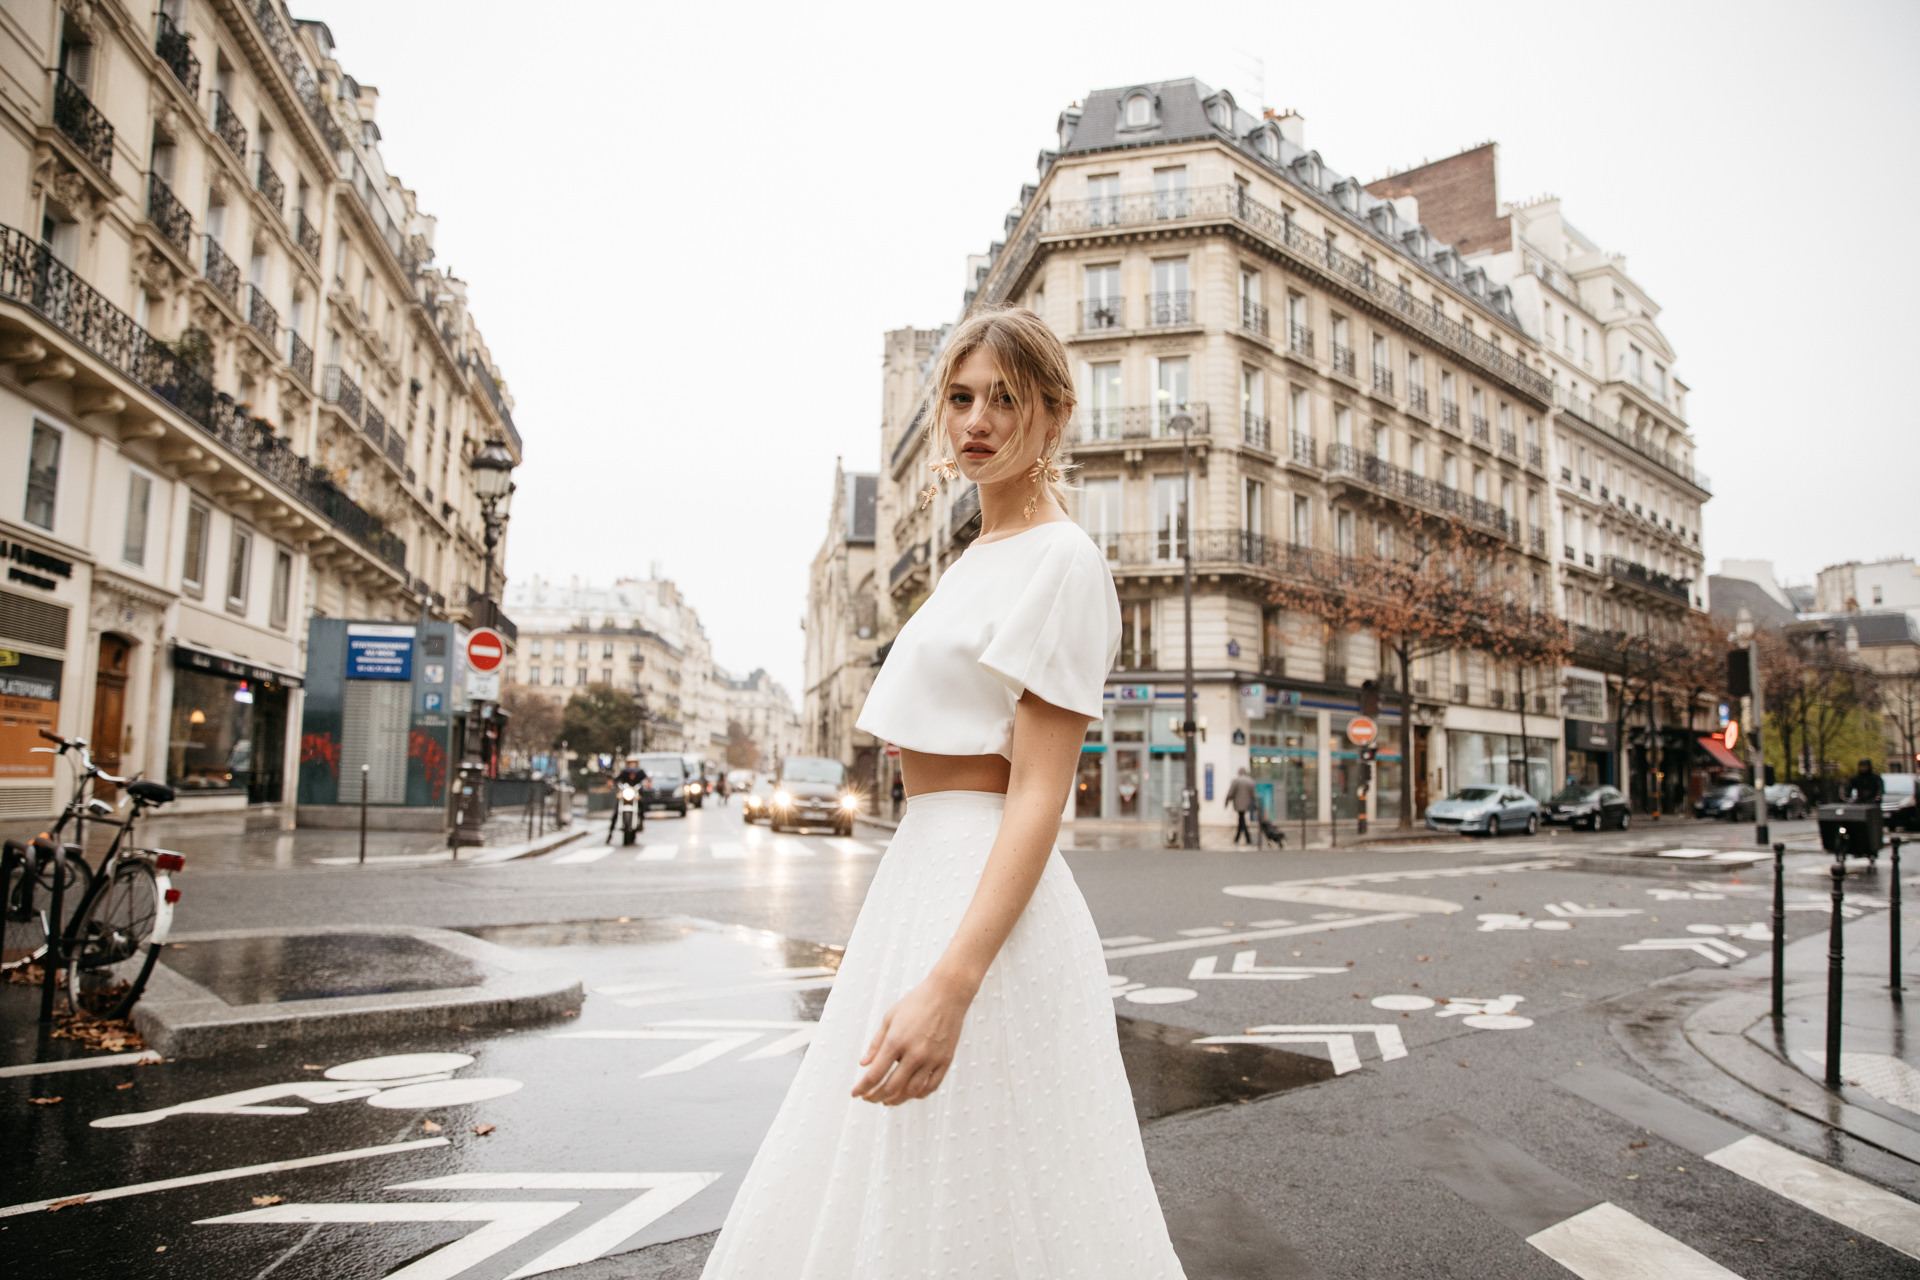 Daisy by Katie Yeung Parisian editorial with campaign creation by Engaged Creative